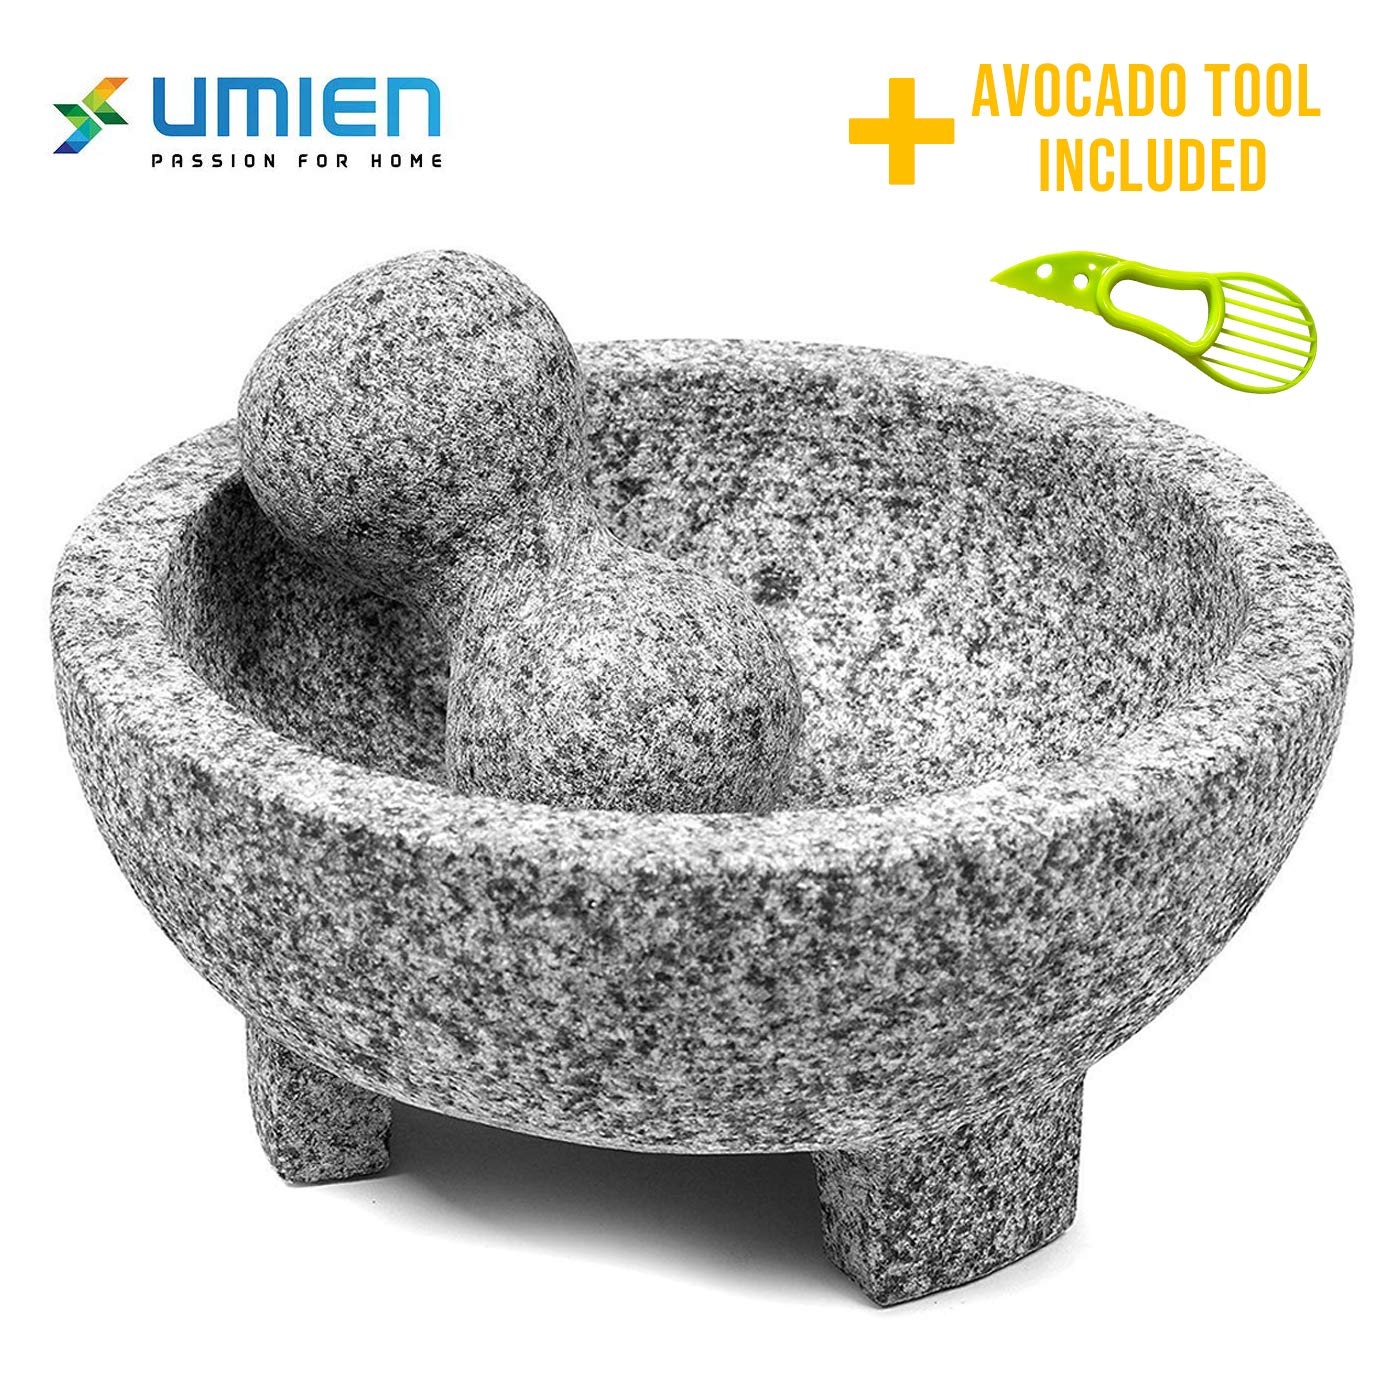 Granite Mortar and Pestle Set guacamole bowl Molcajete 8 Inch - Natural Stone Grinder for Spices, Seasonings, Pastes, Pestos and Guacamole - Extra Bonus Avocado Tool Included by umien